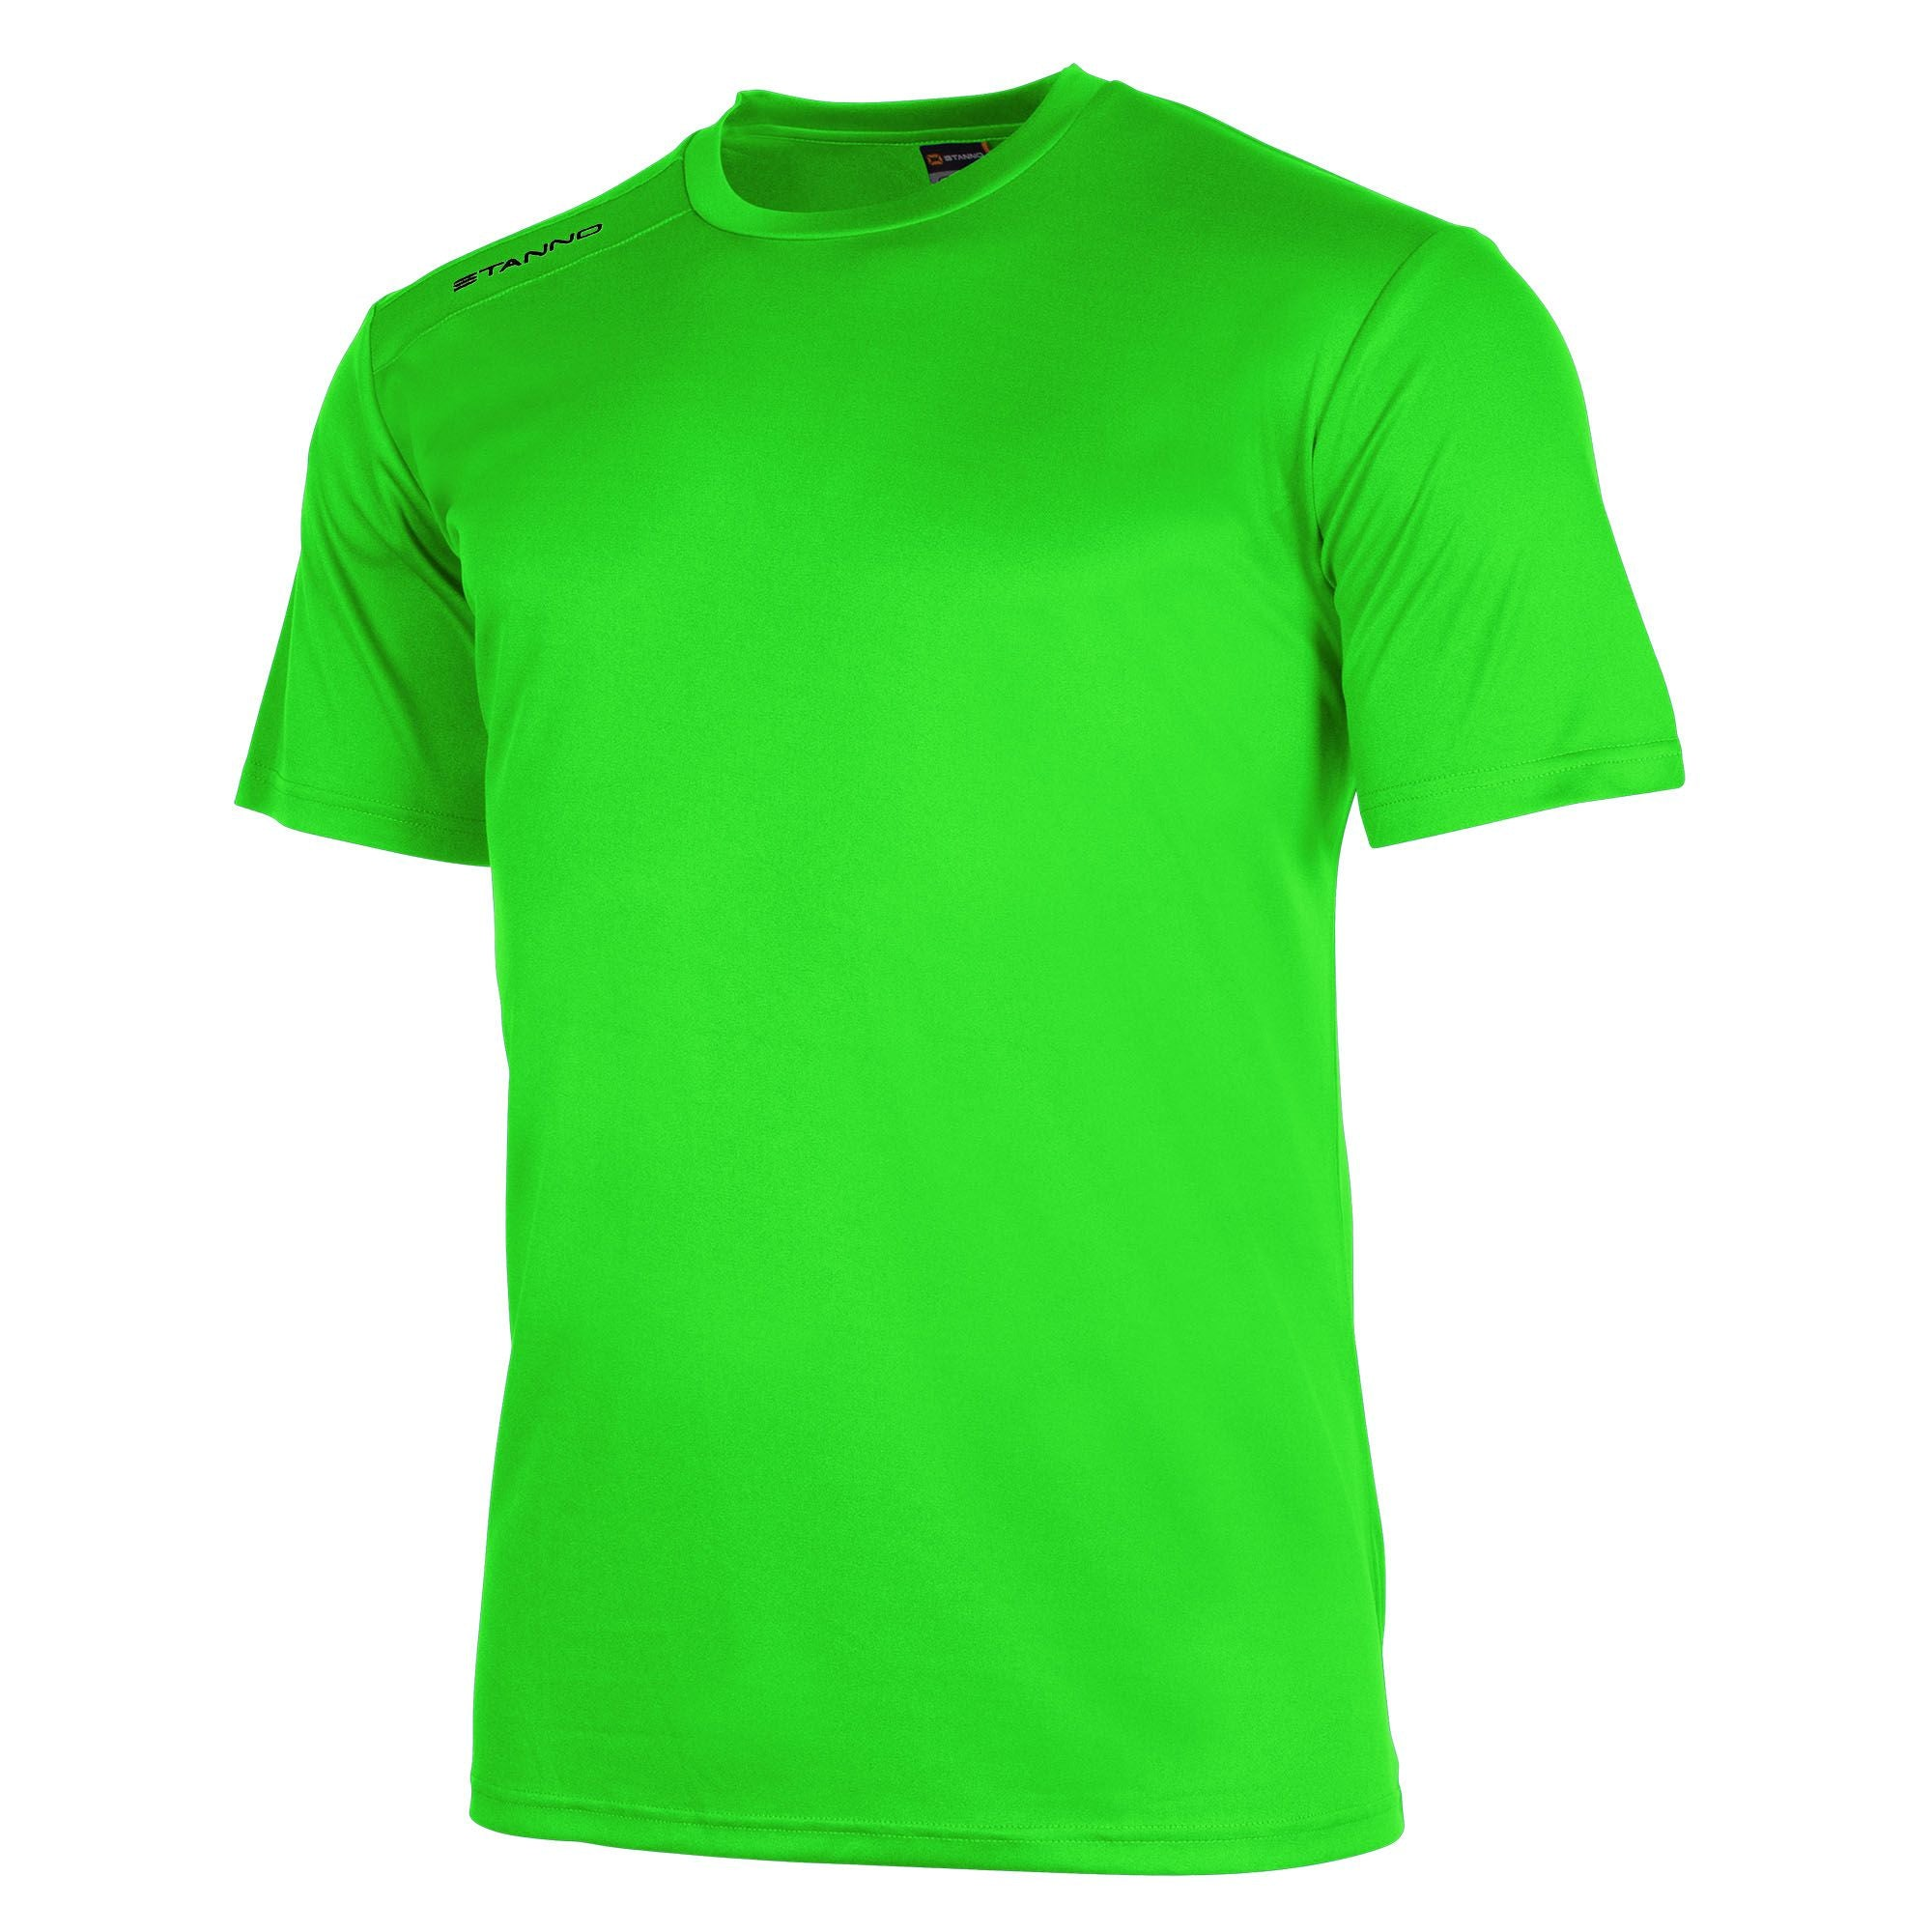 Front of Stanno field short sleeve shirt in neon green with black Stanno logo on right shoulder